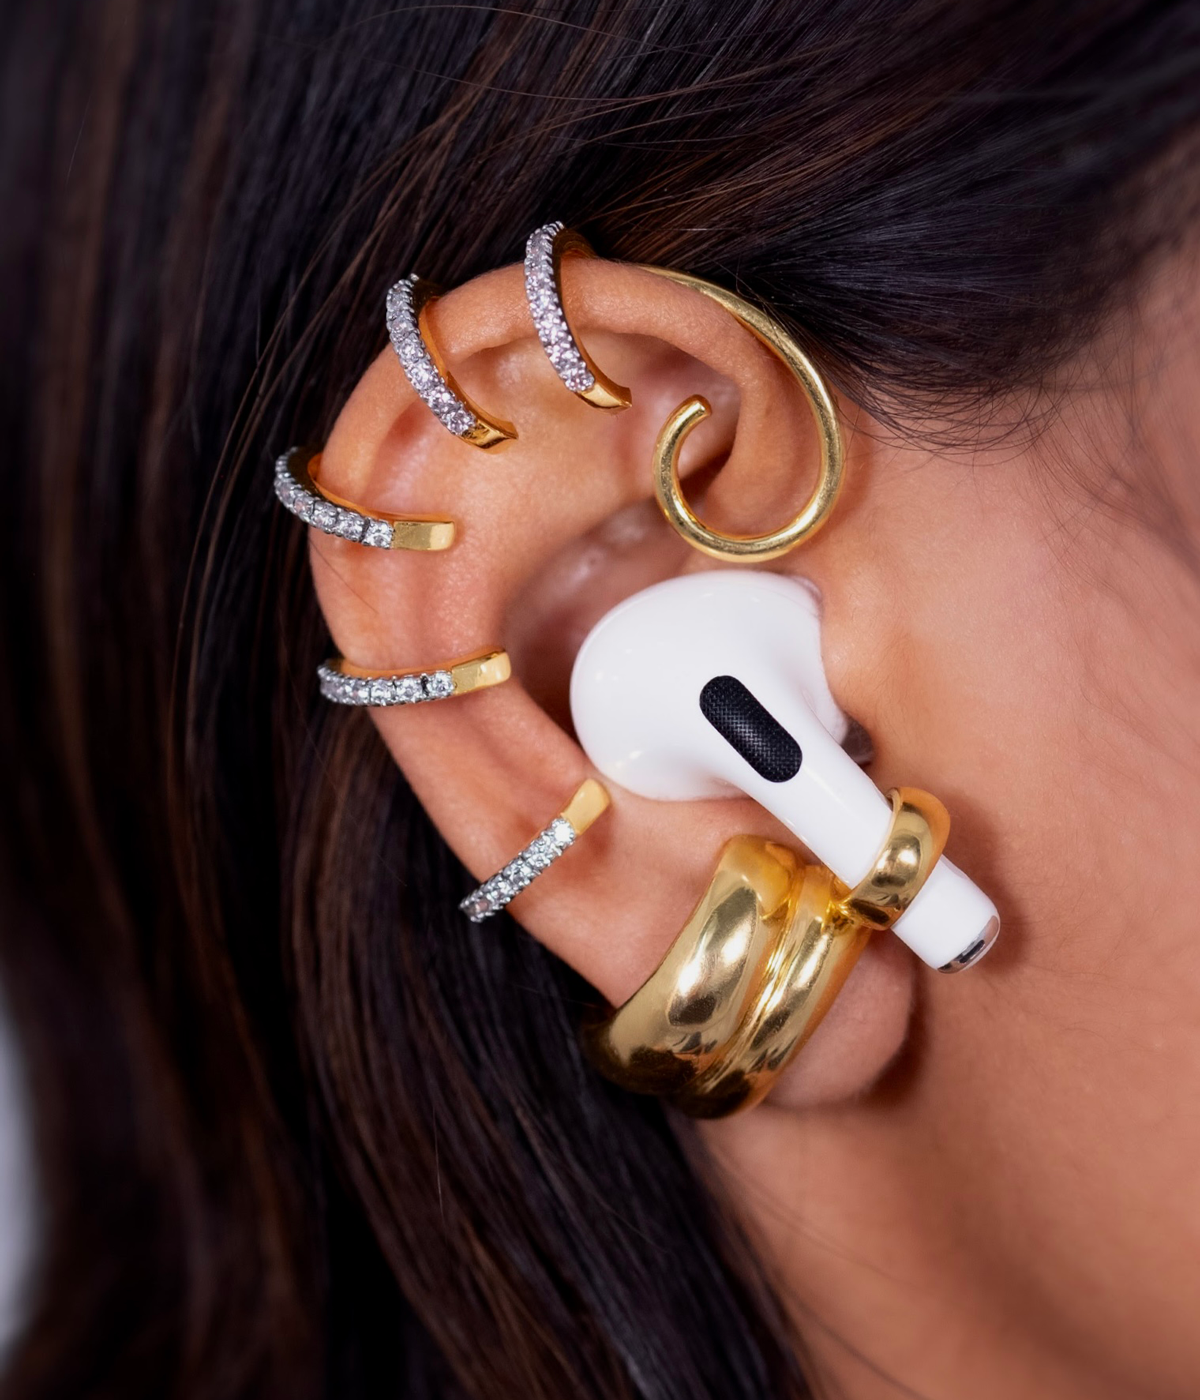 Woman wearing AirPod with earring on it